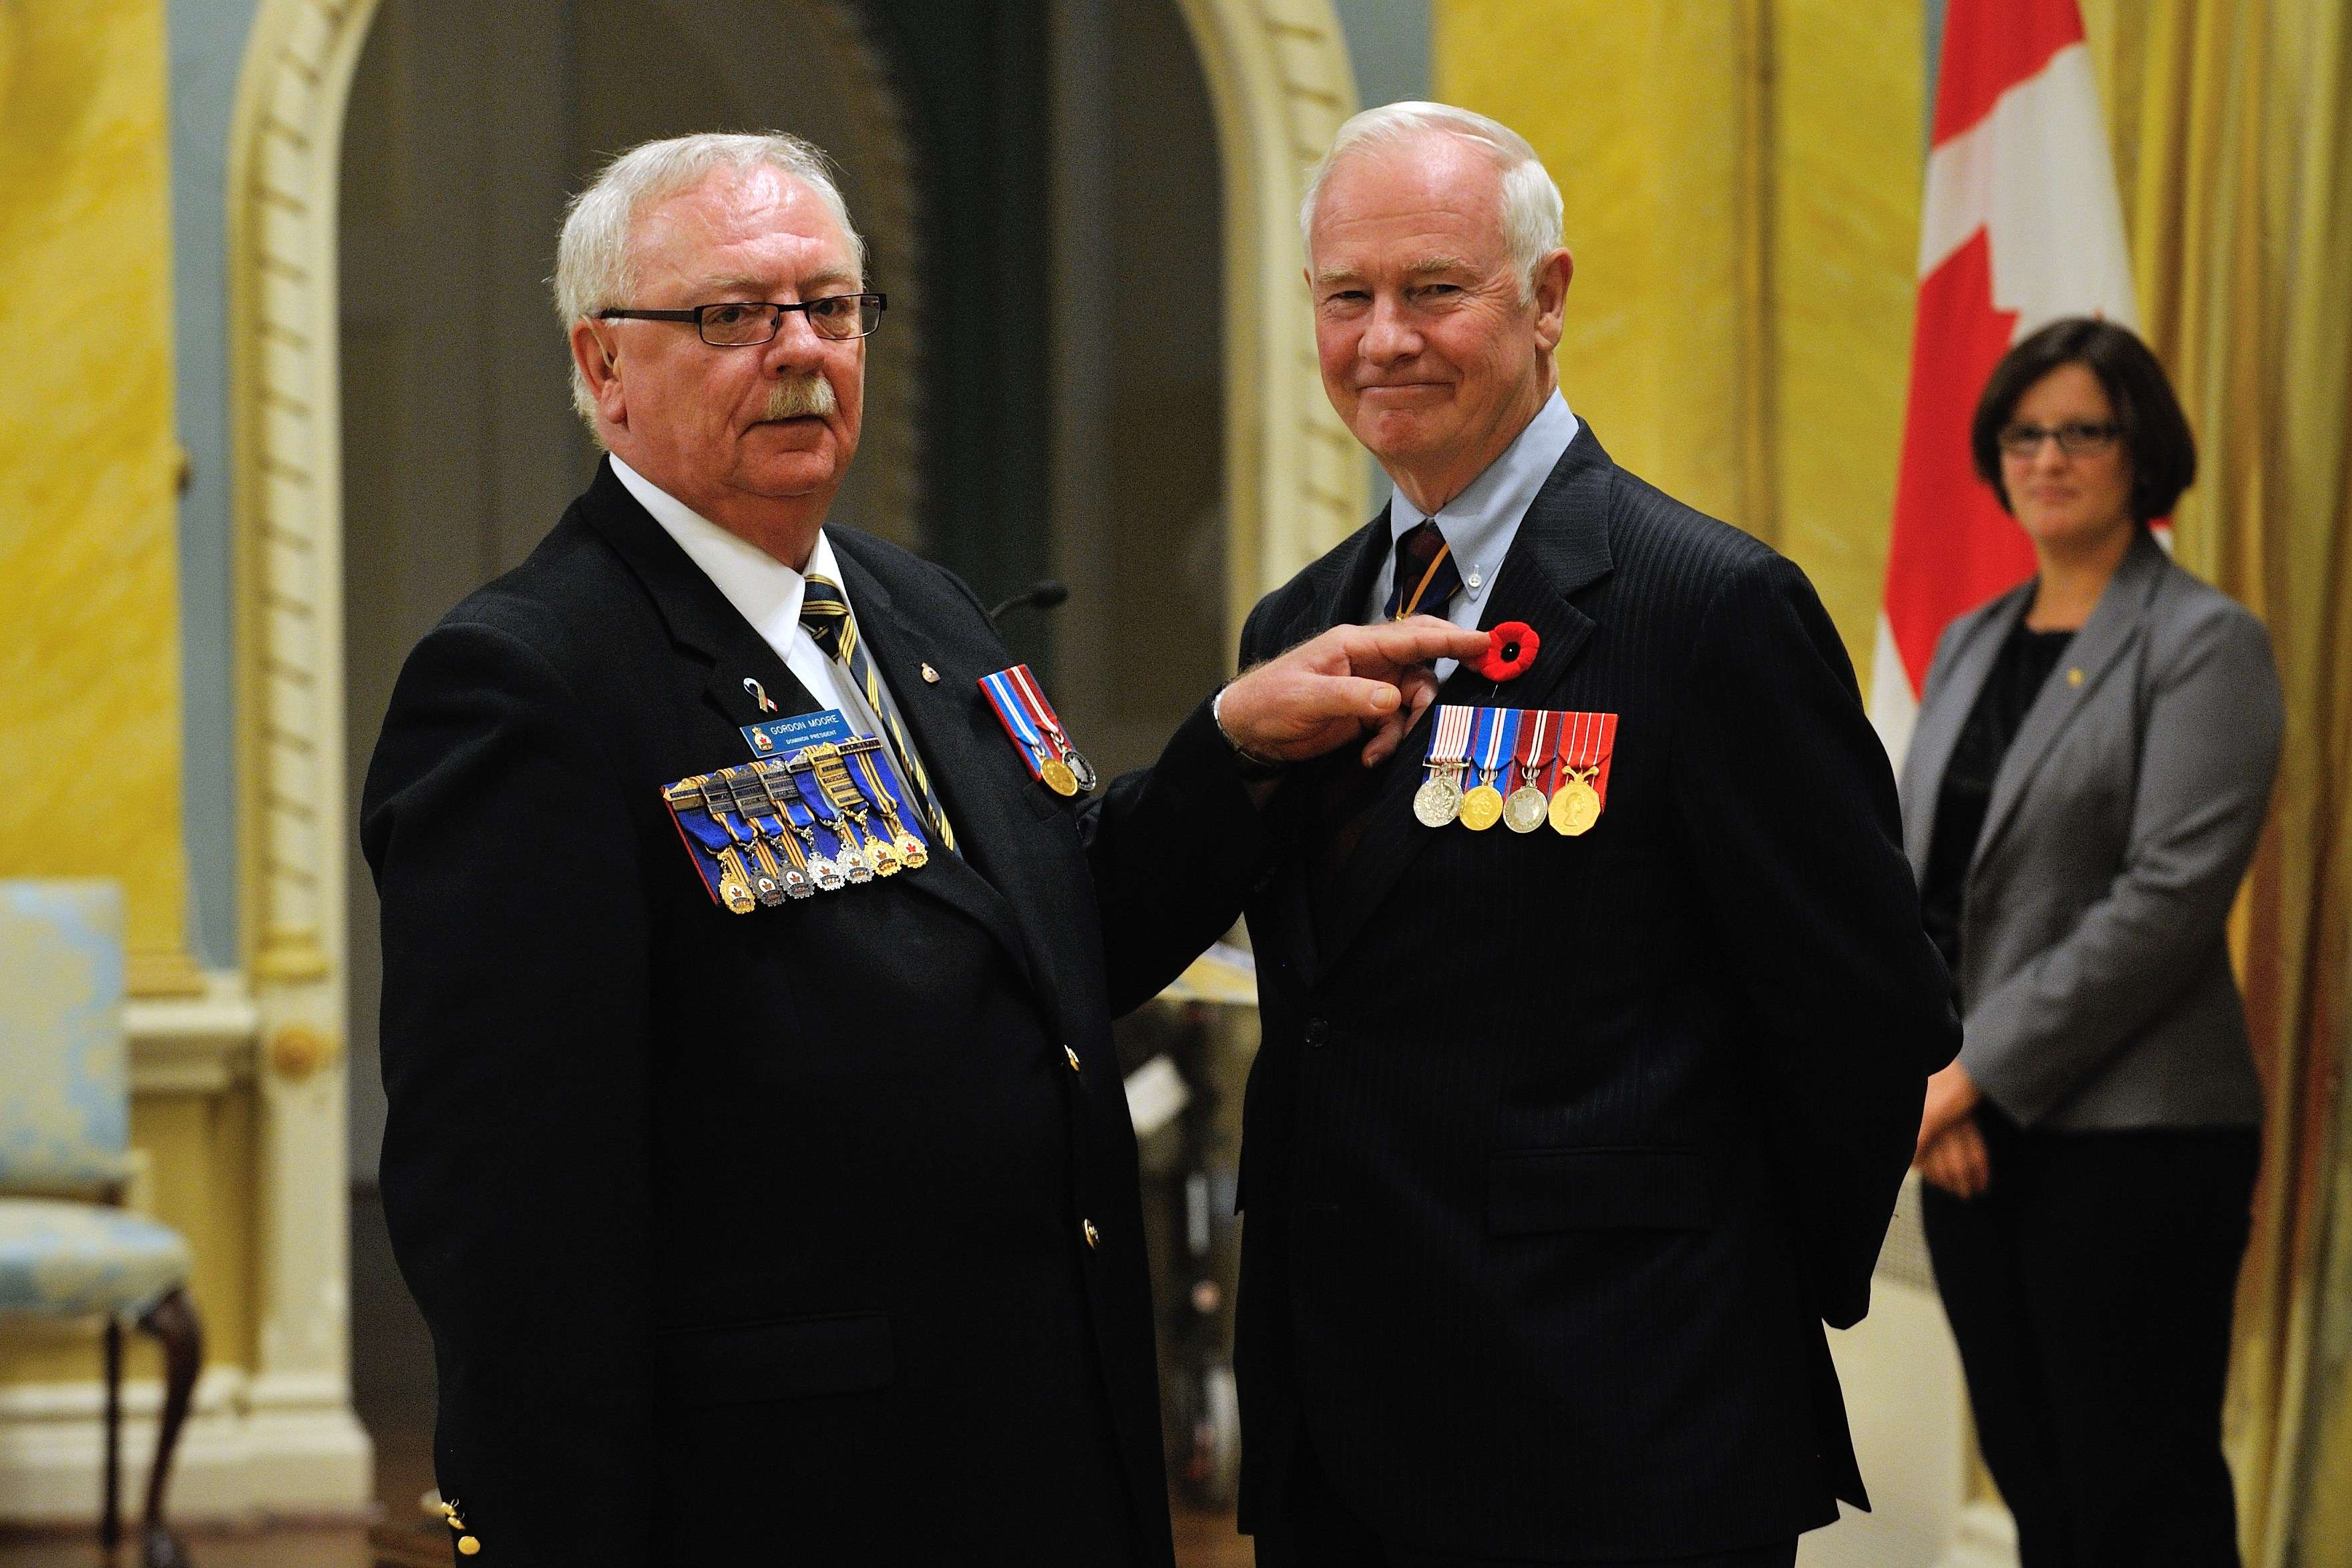 His Excellency, who is patron of The Royal Canadian Legion, received the symbolic first poppy from Comrade Gordon Moore, Dominion President of The Royal Canadian Legion.